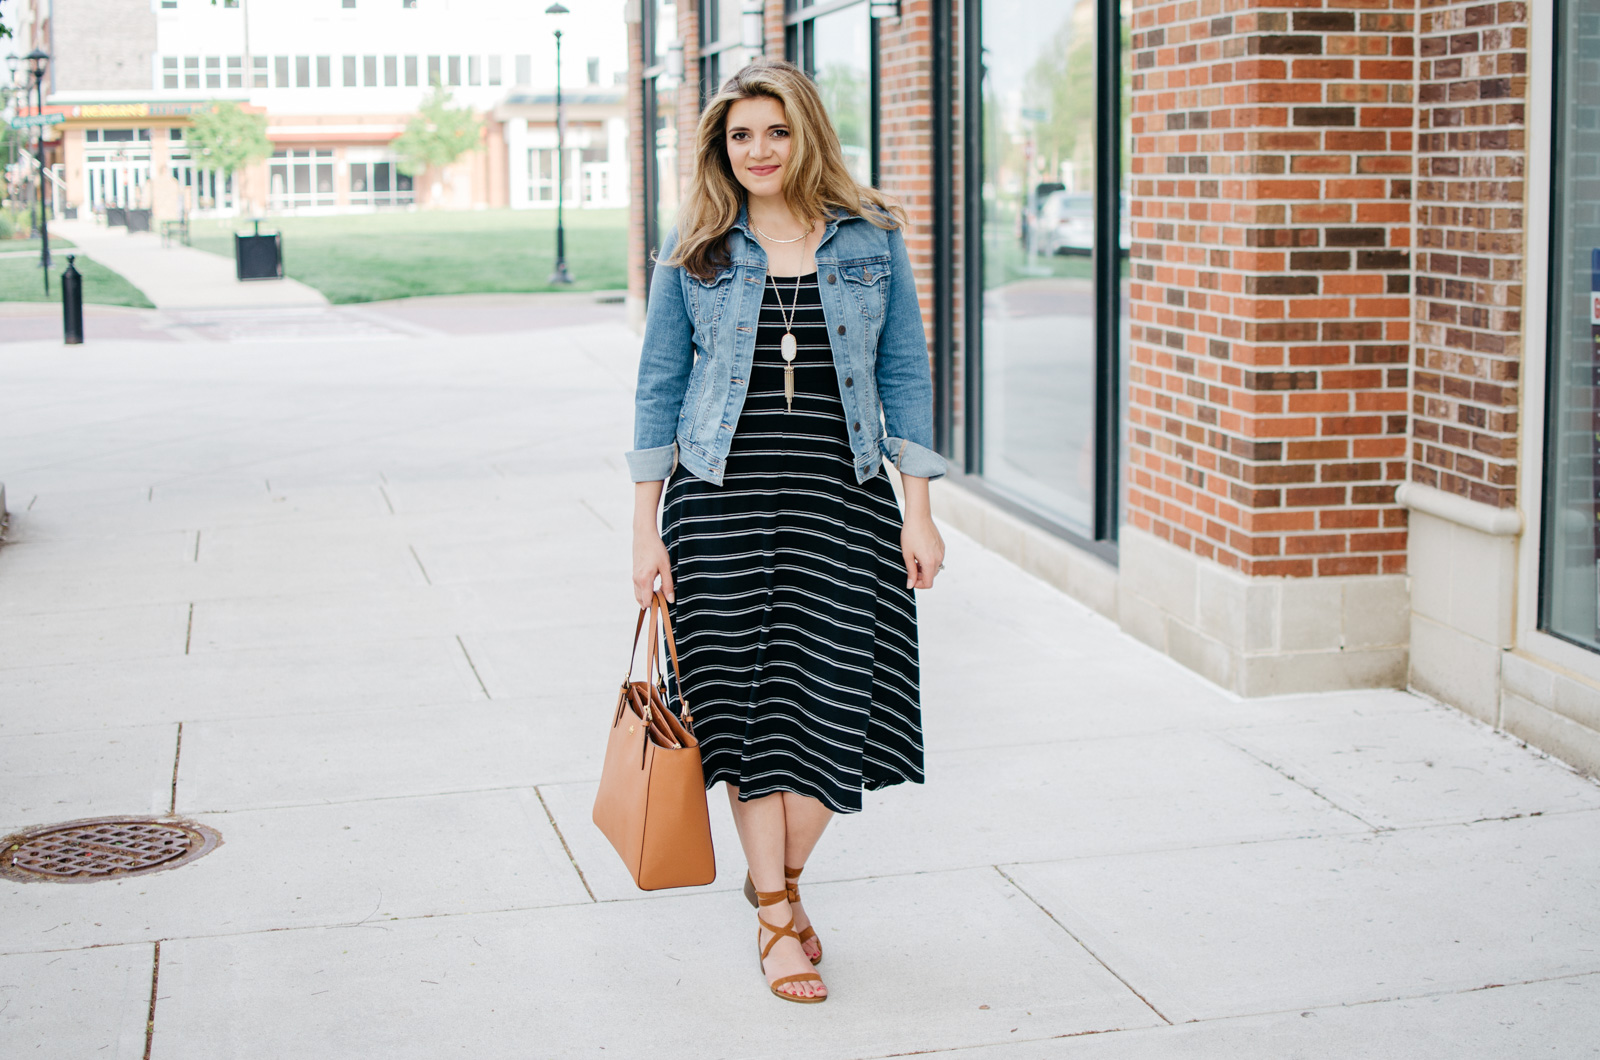 midi dress outfit for spring | For more Spring outfit ideas, head to bylaurenm.com!